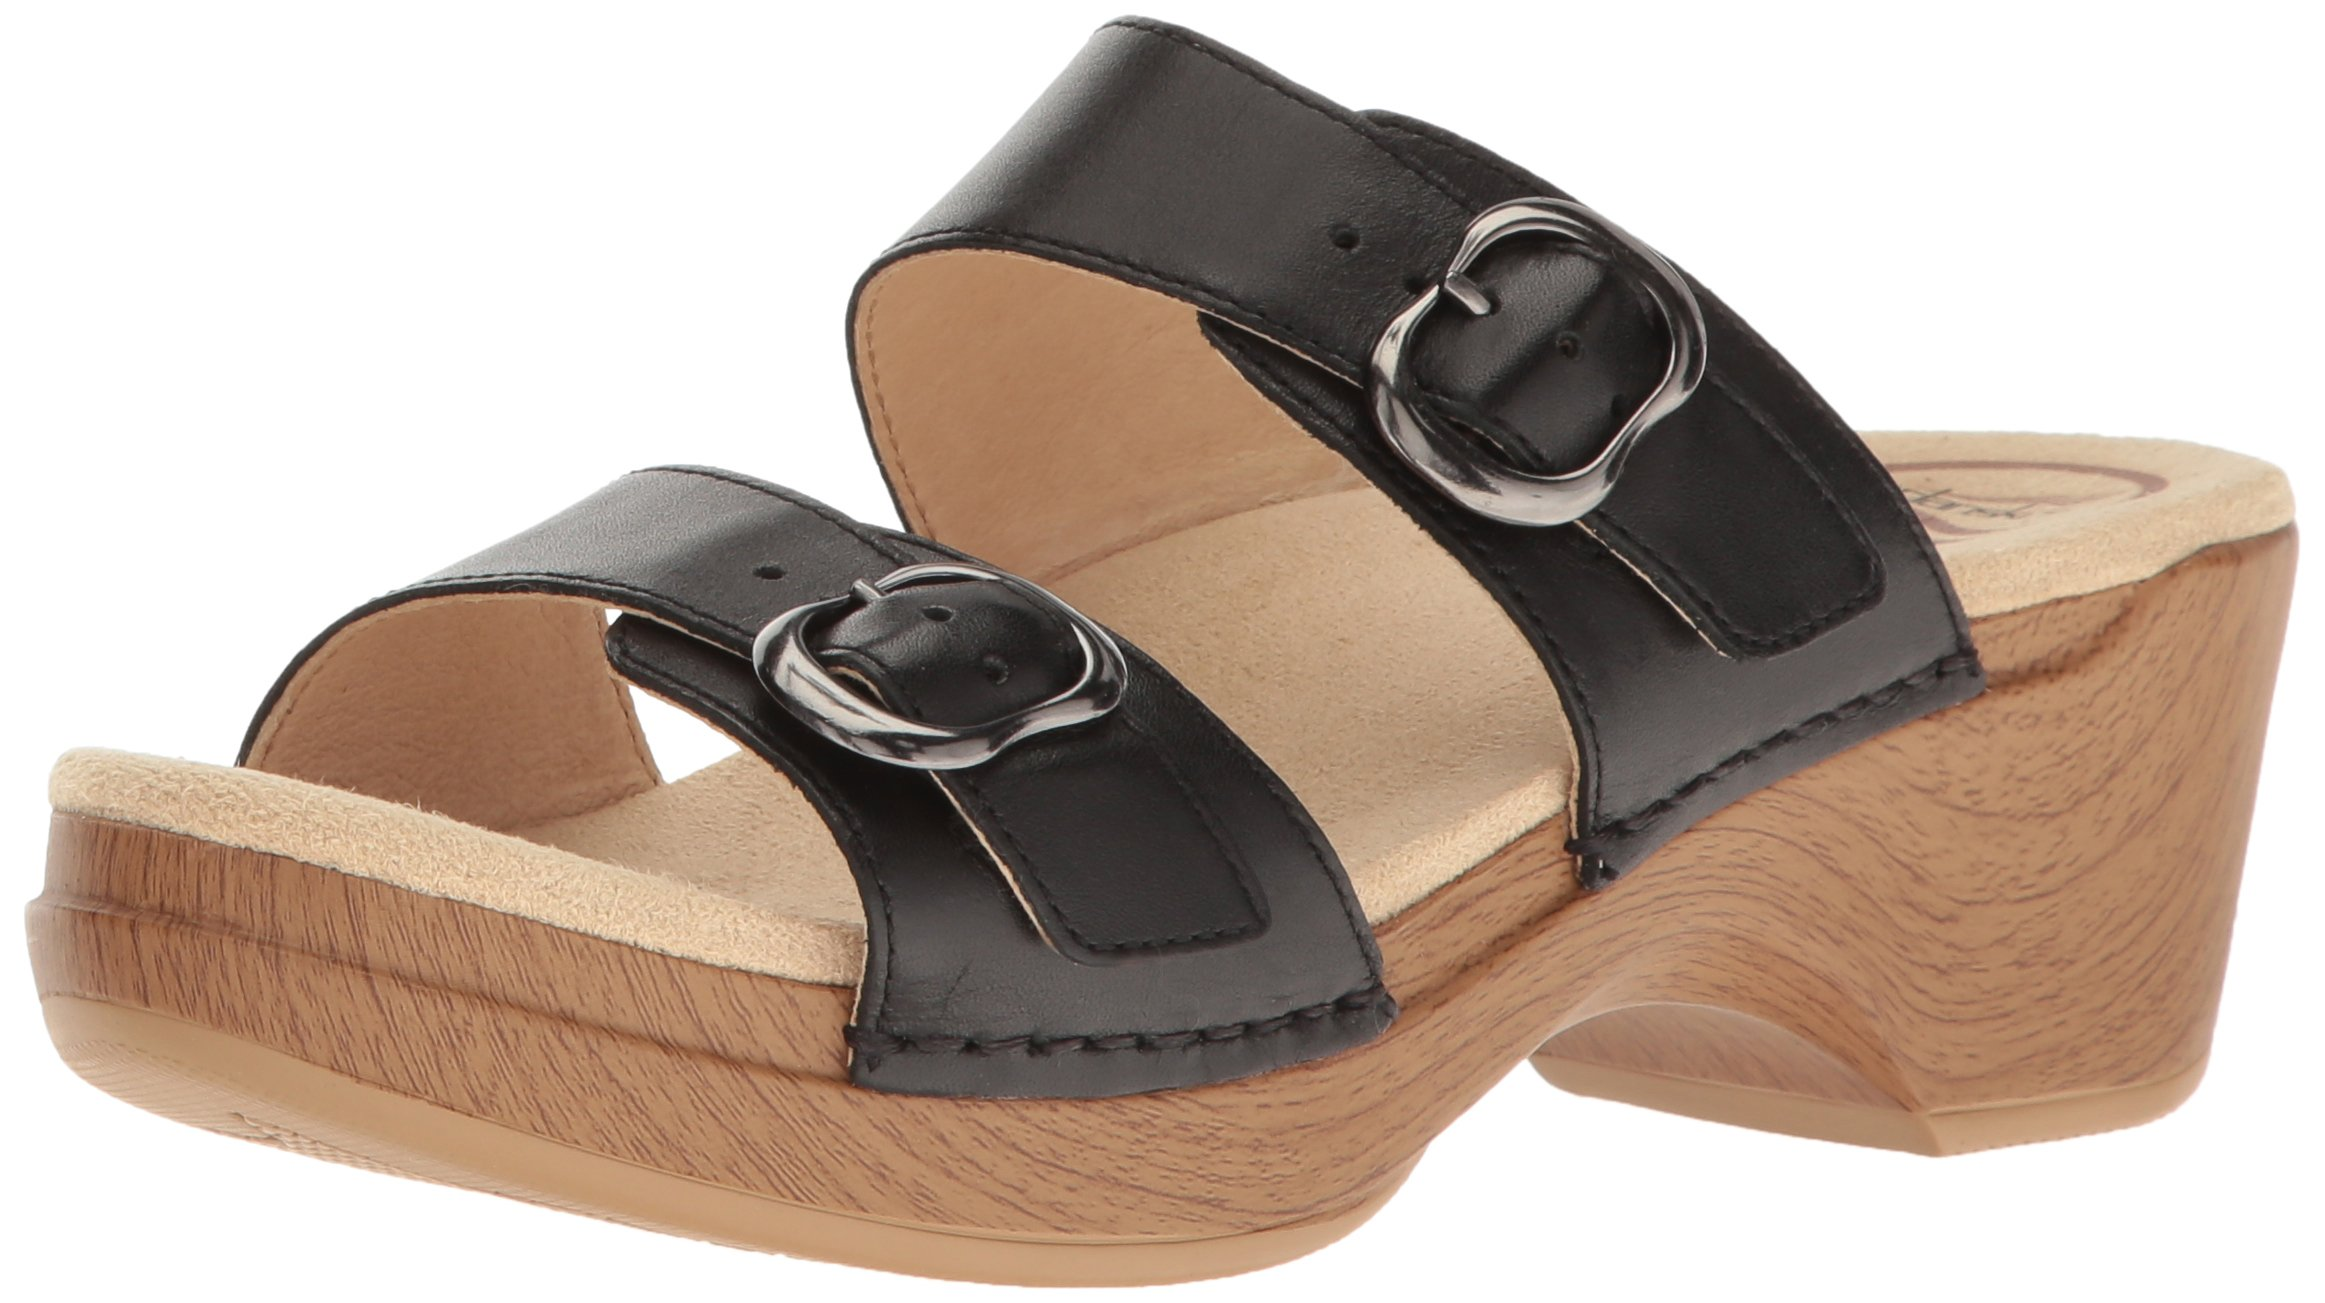 Dansko Women's Sophie Flat Sandal, Black Full Grain, 38 EU/7.5-8 M US